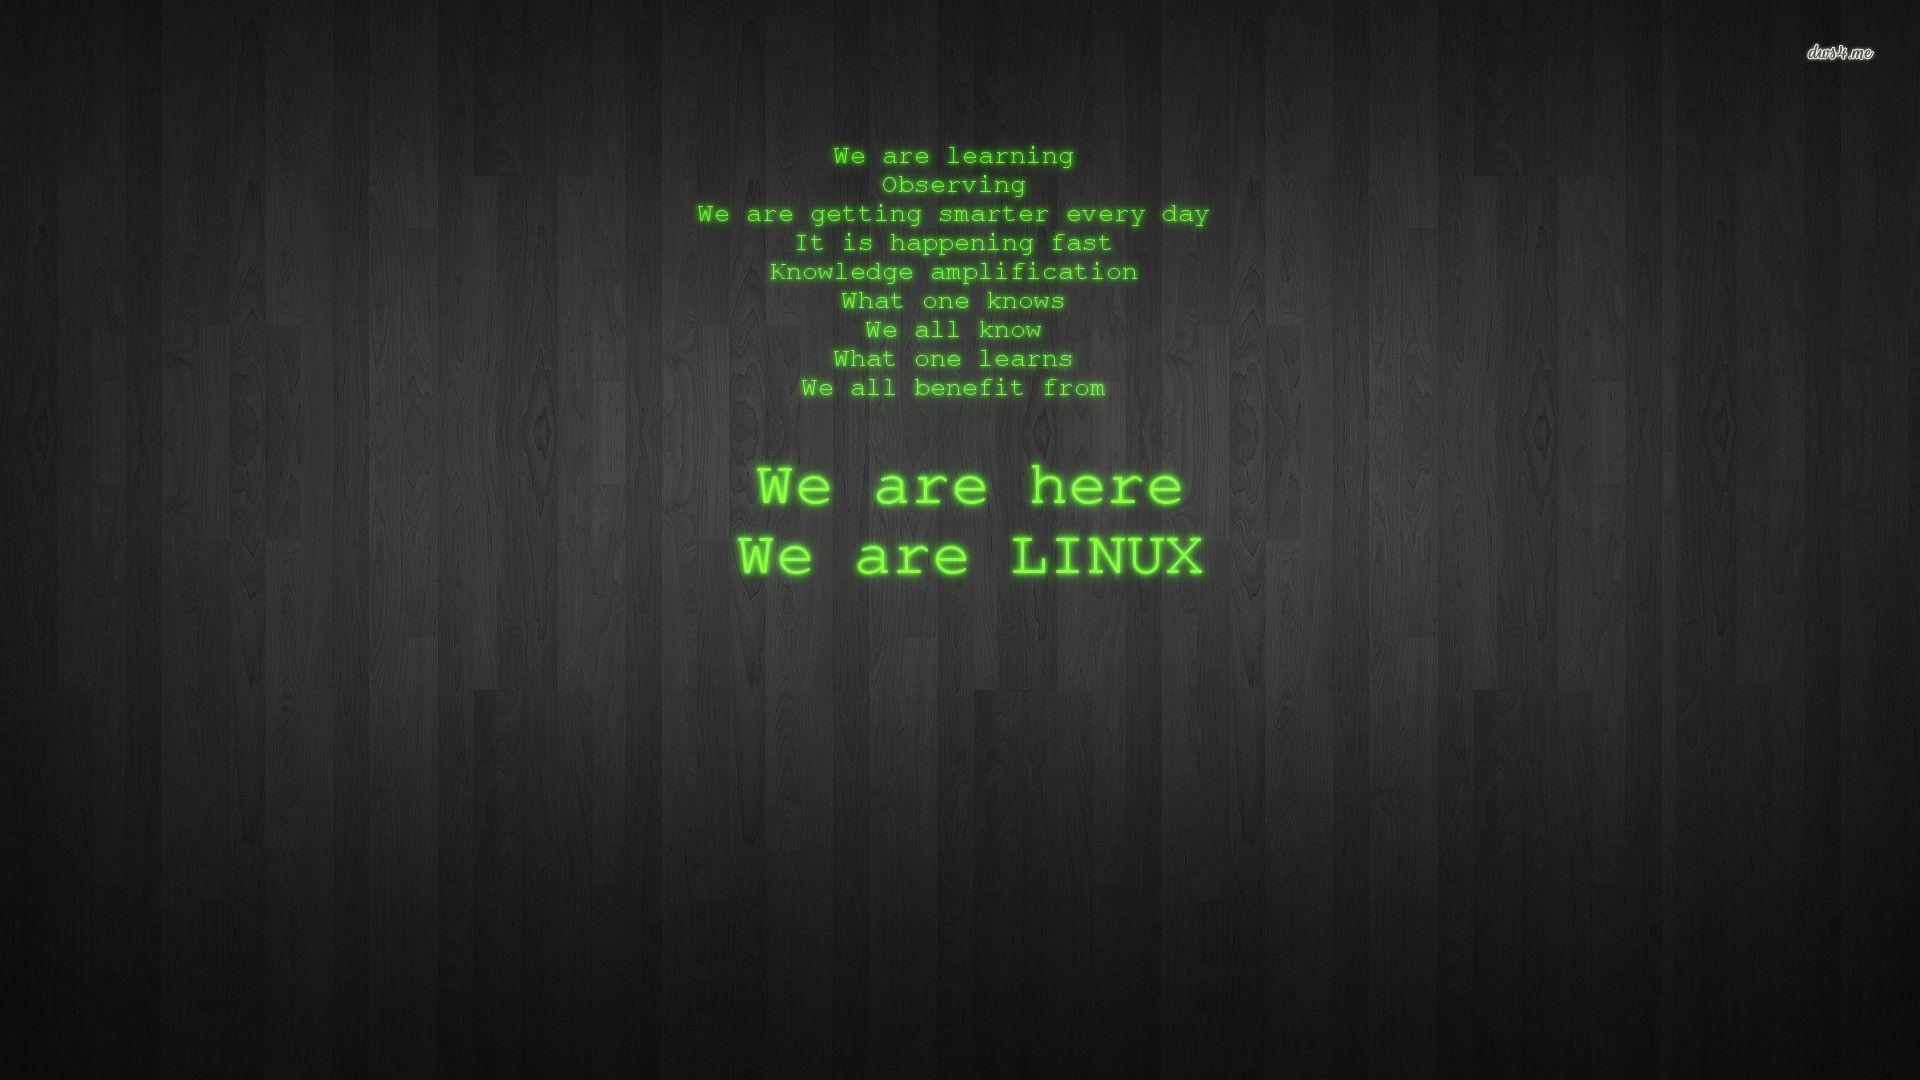 fight for linux wallpaper - photo #39